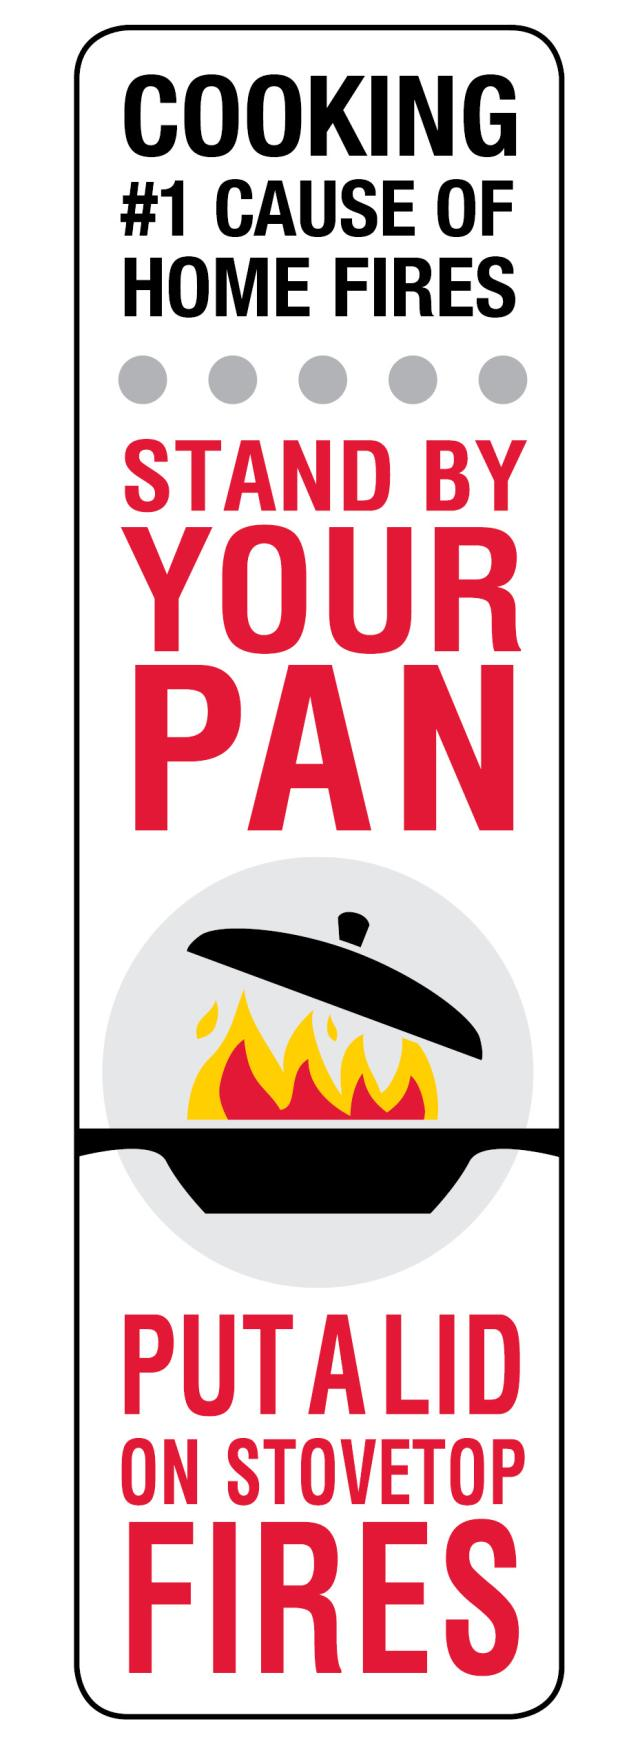 Stand By Your Pan and Put a Lid on Stovetop Cooking logos